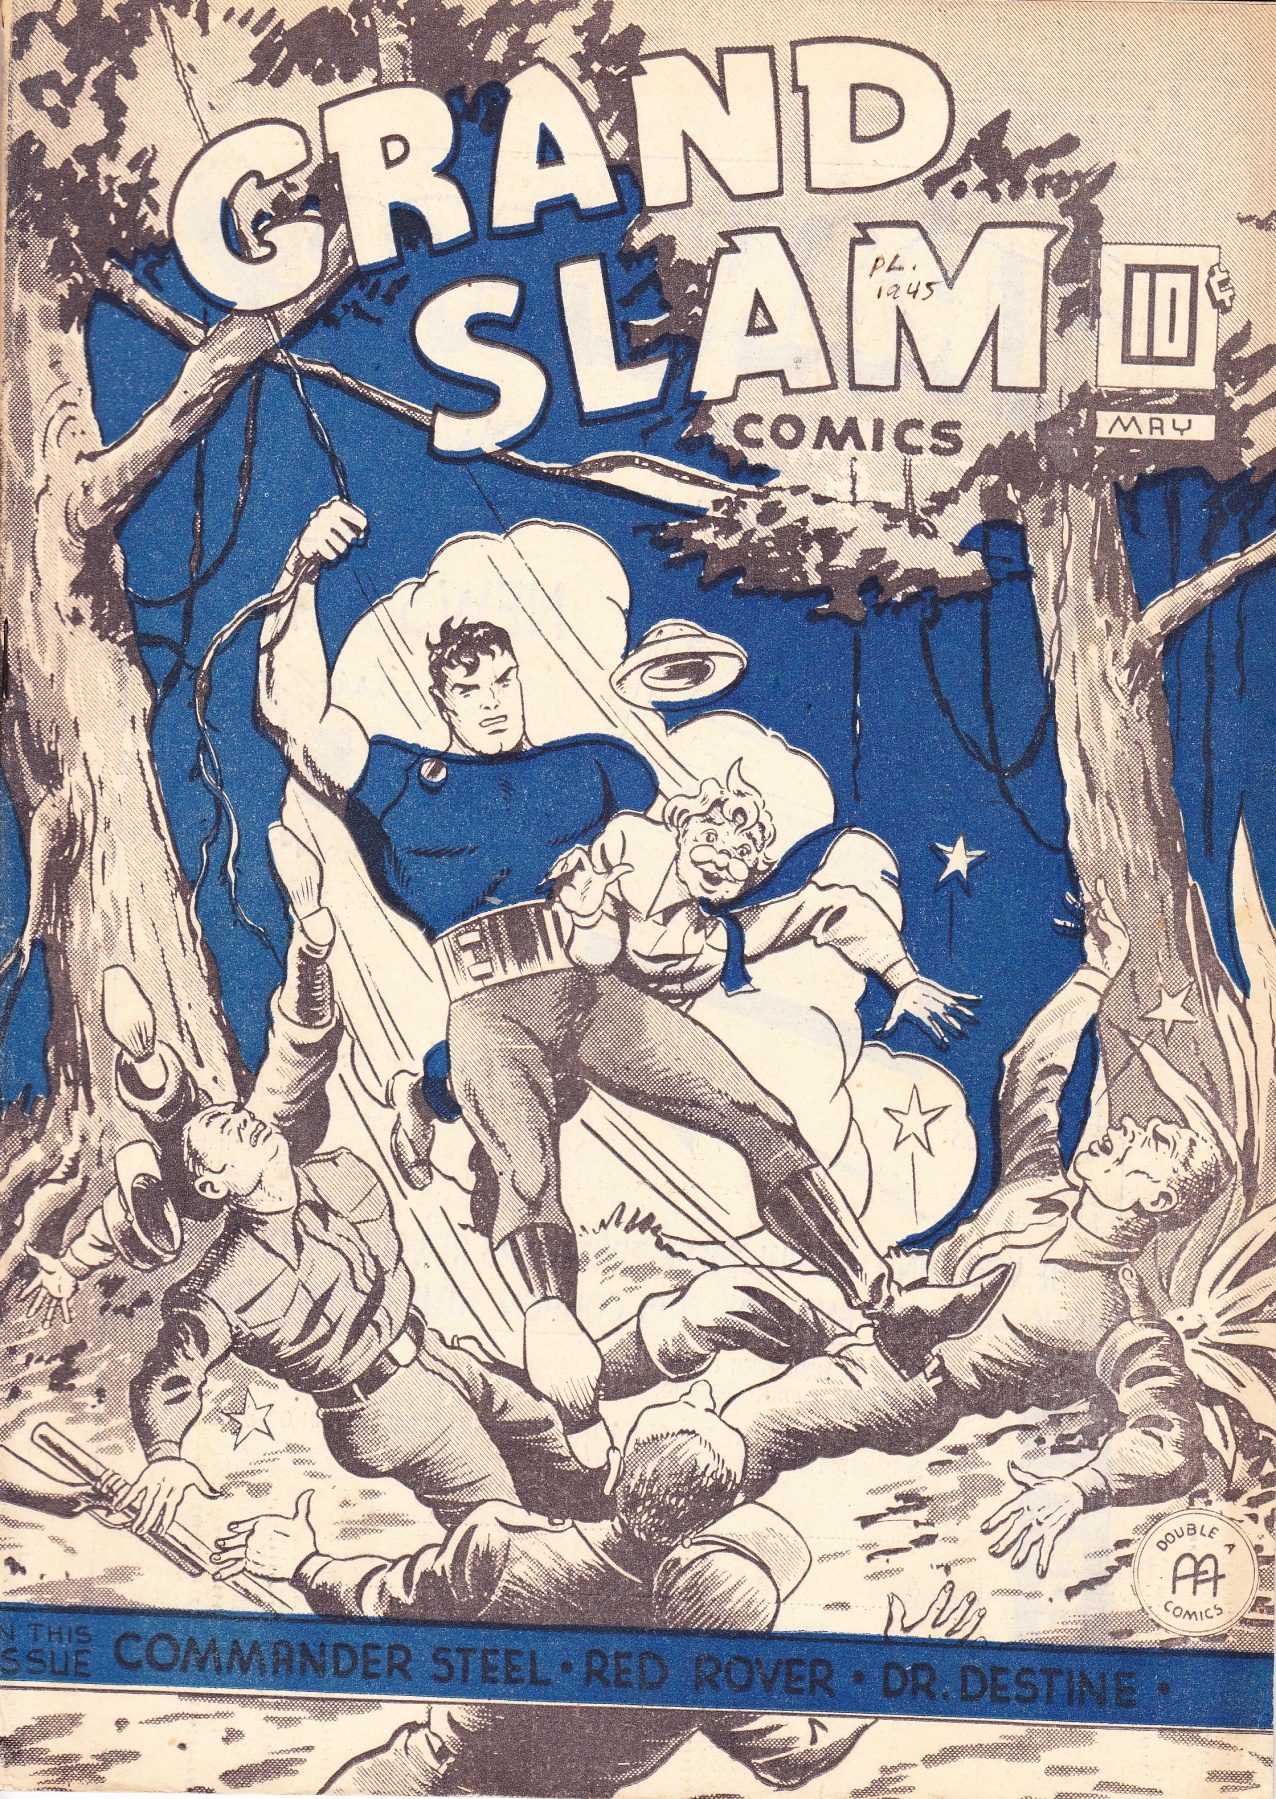 C:\Users\Robert\Documents\CARTOONING ILLUSTRATION ANIMATION\IMAGE CARTOON\IMAGE CARTOON C\COMMANDER STEEL, Grand Slam Comics, 4-6, fc.jpg